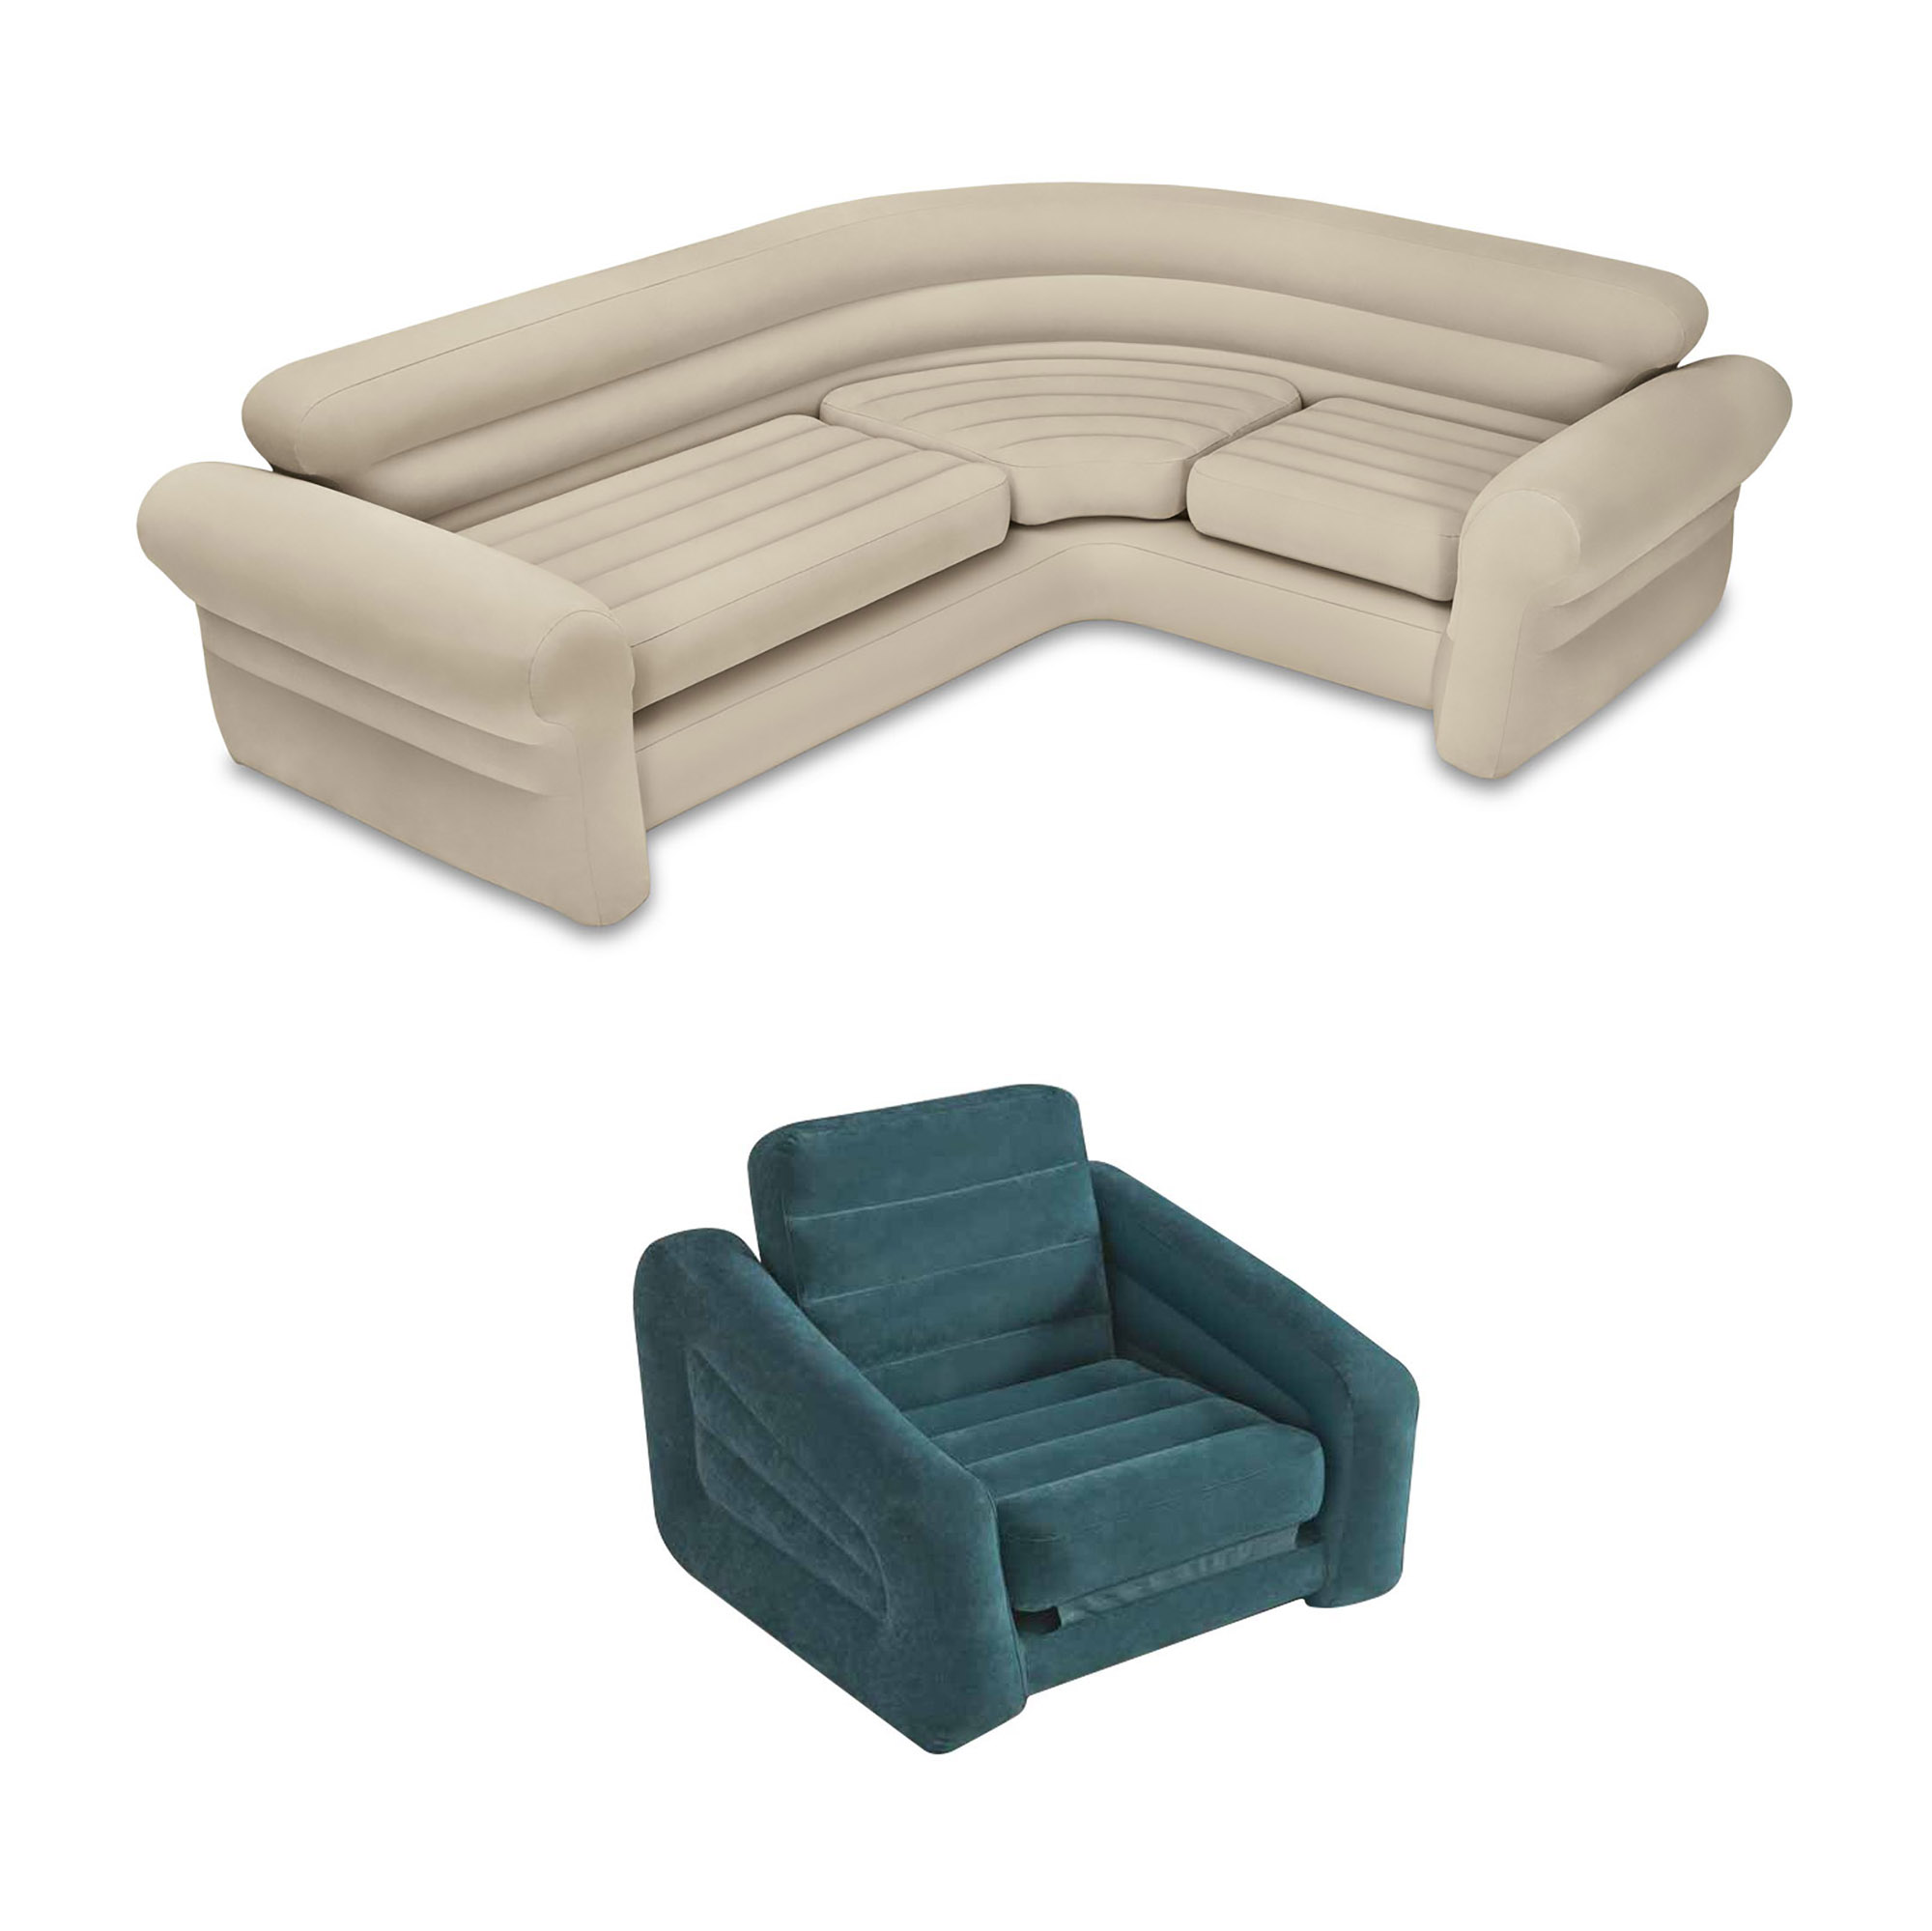 Intex Inflatable Corner Sectional Sofa & Inflatable Air Mattress Pull-Out Chair by Intex